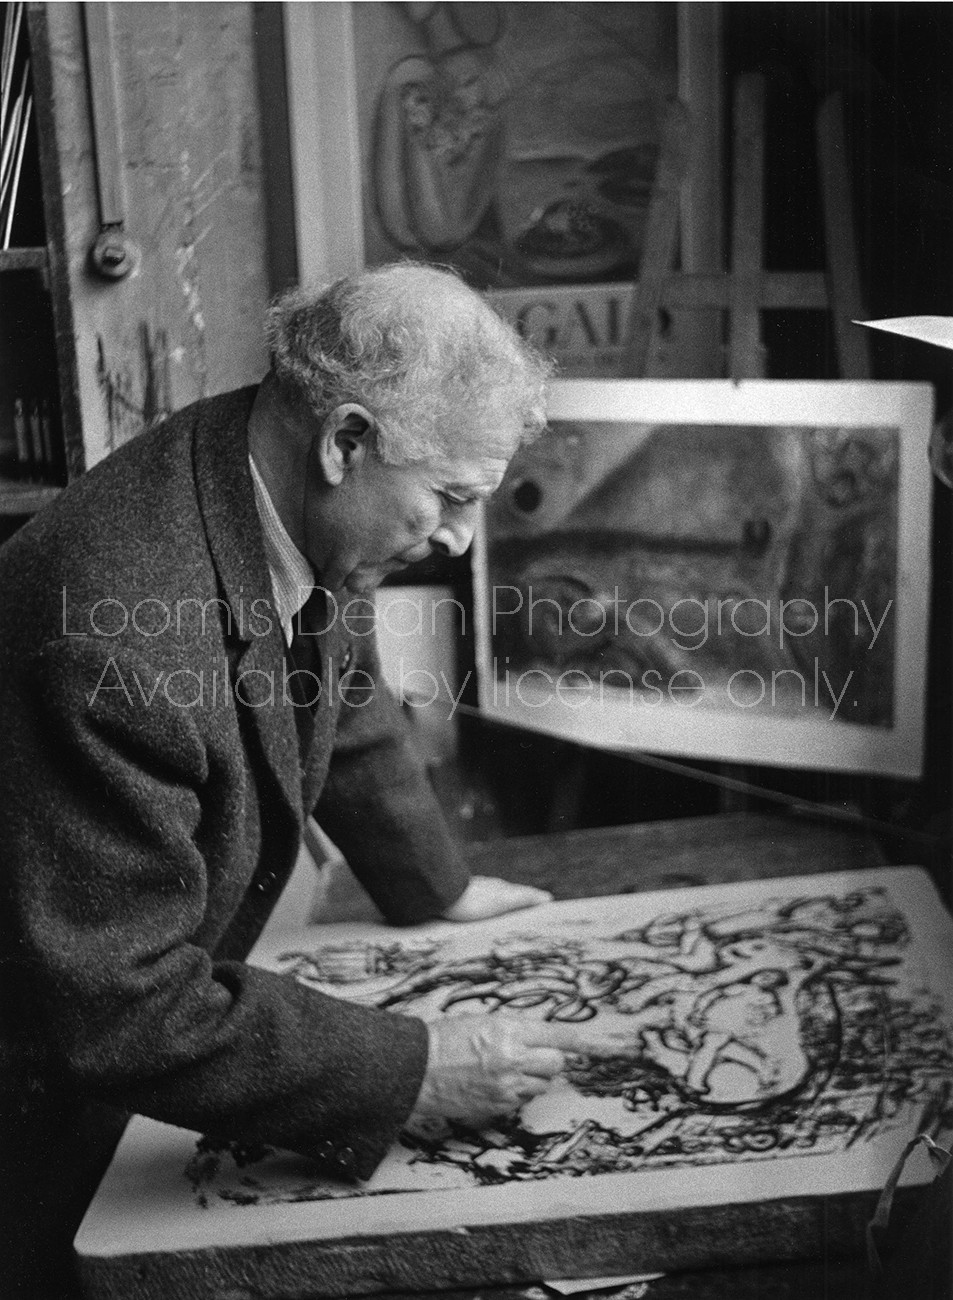 ARTIST CHAGALL DRAWING 529